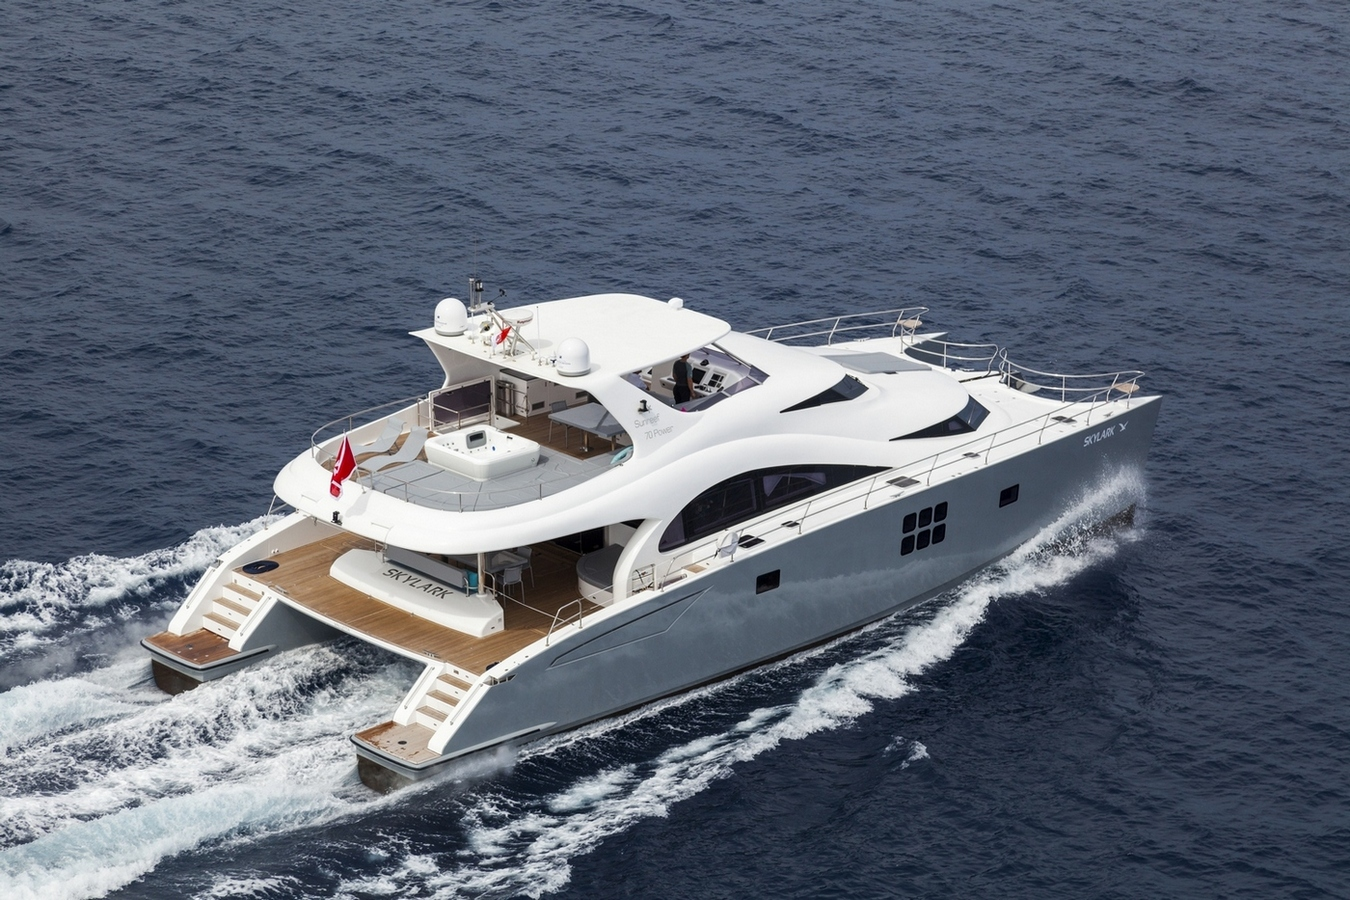 Sunreef Catamaran 70 Skylark